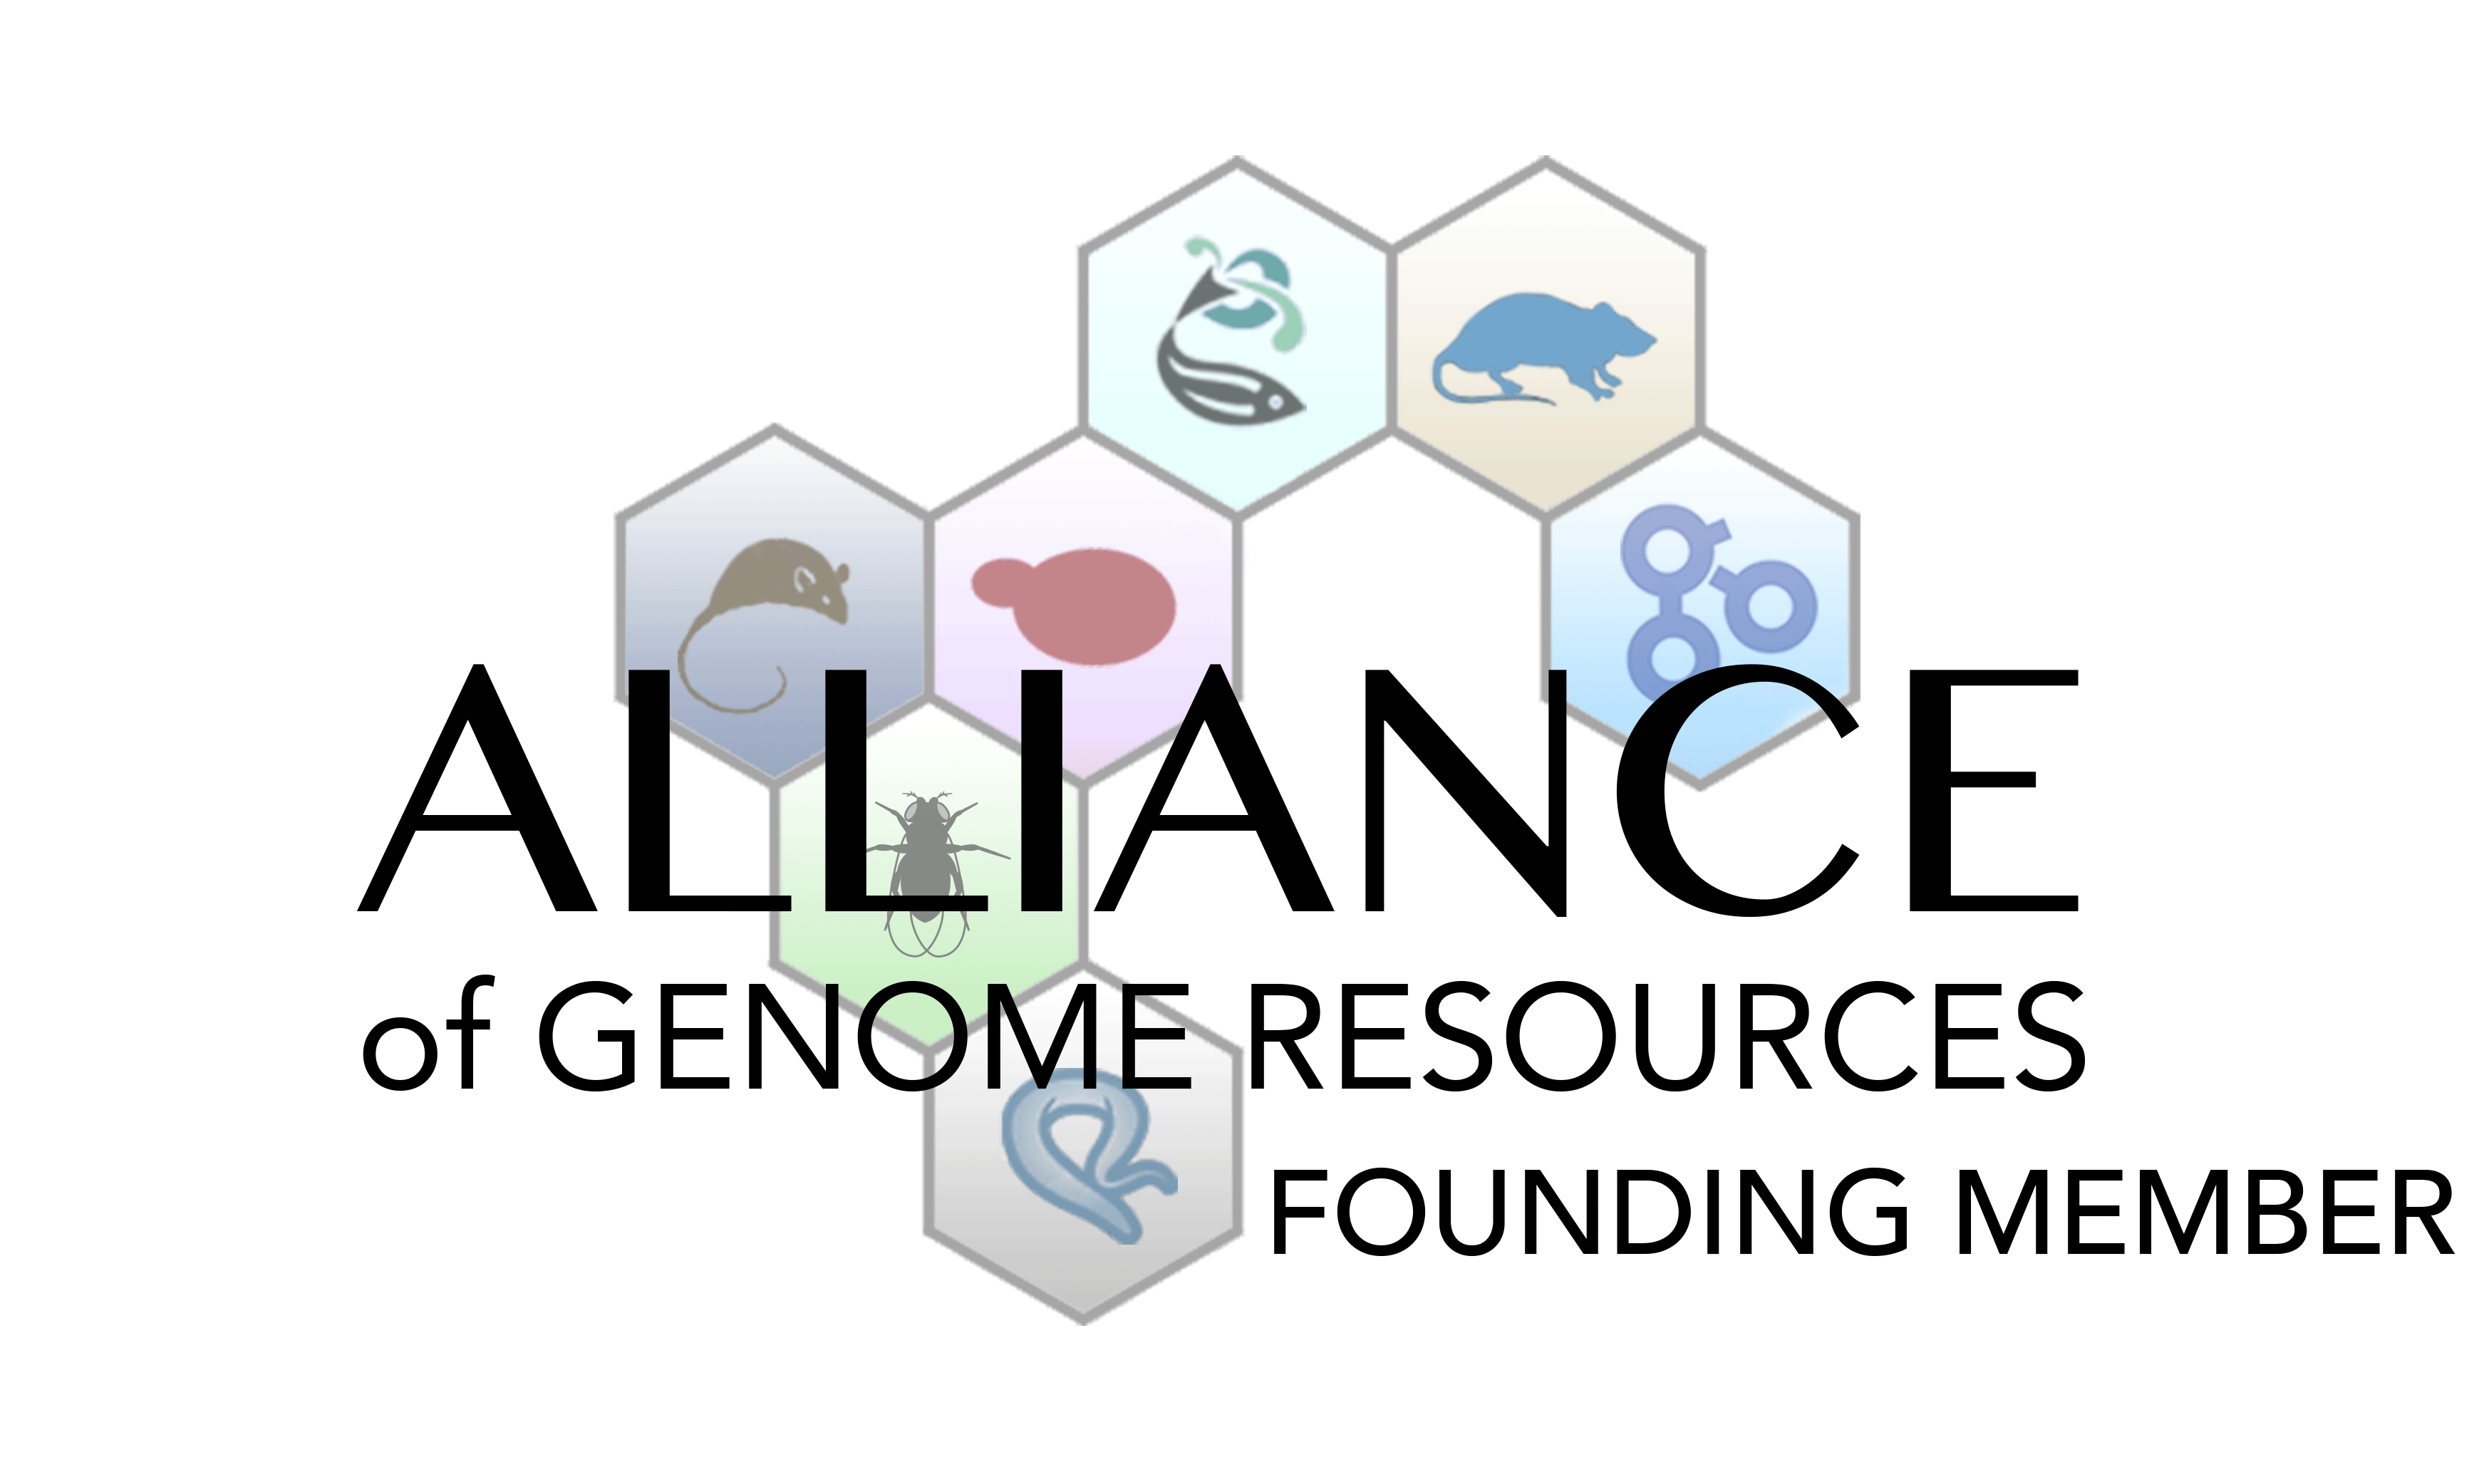 Alliance of Genome Resources